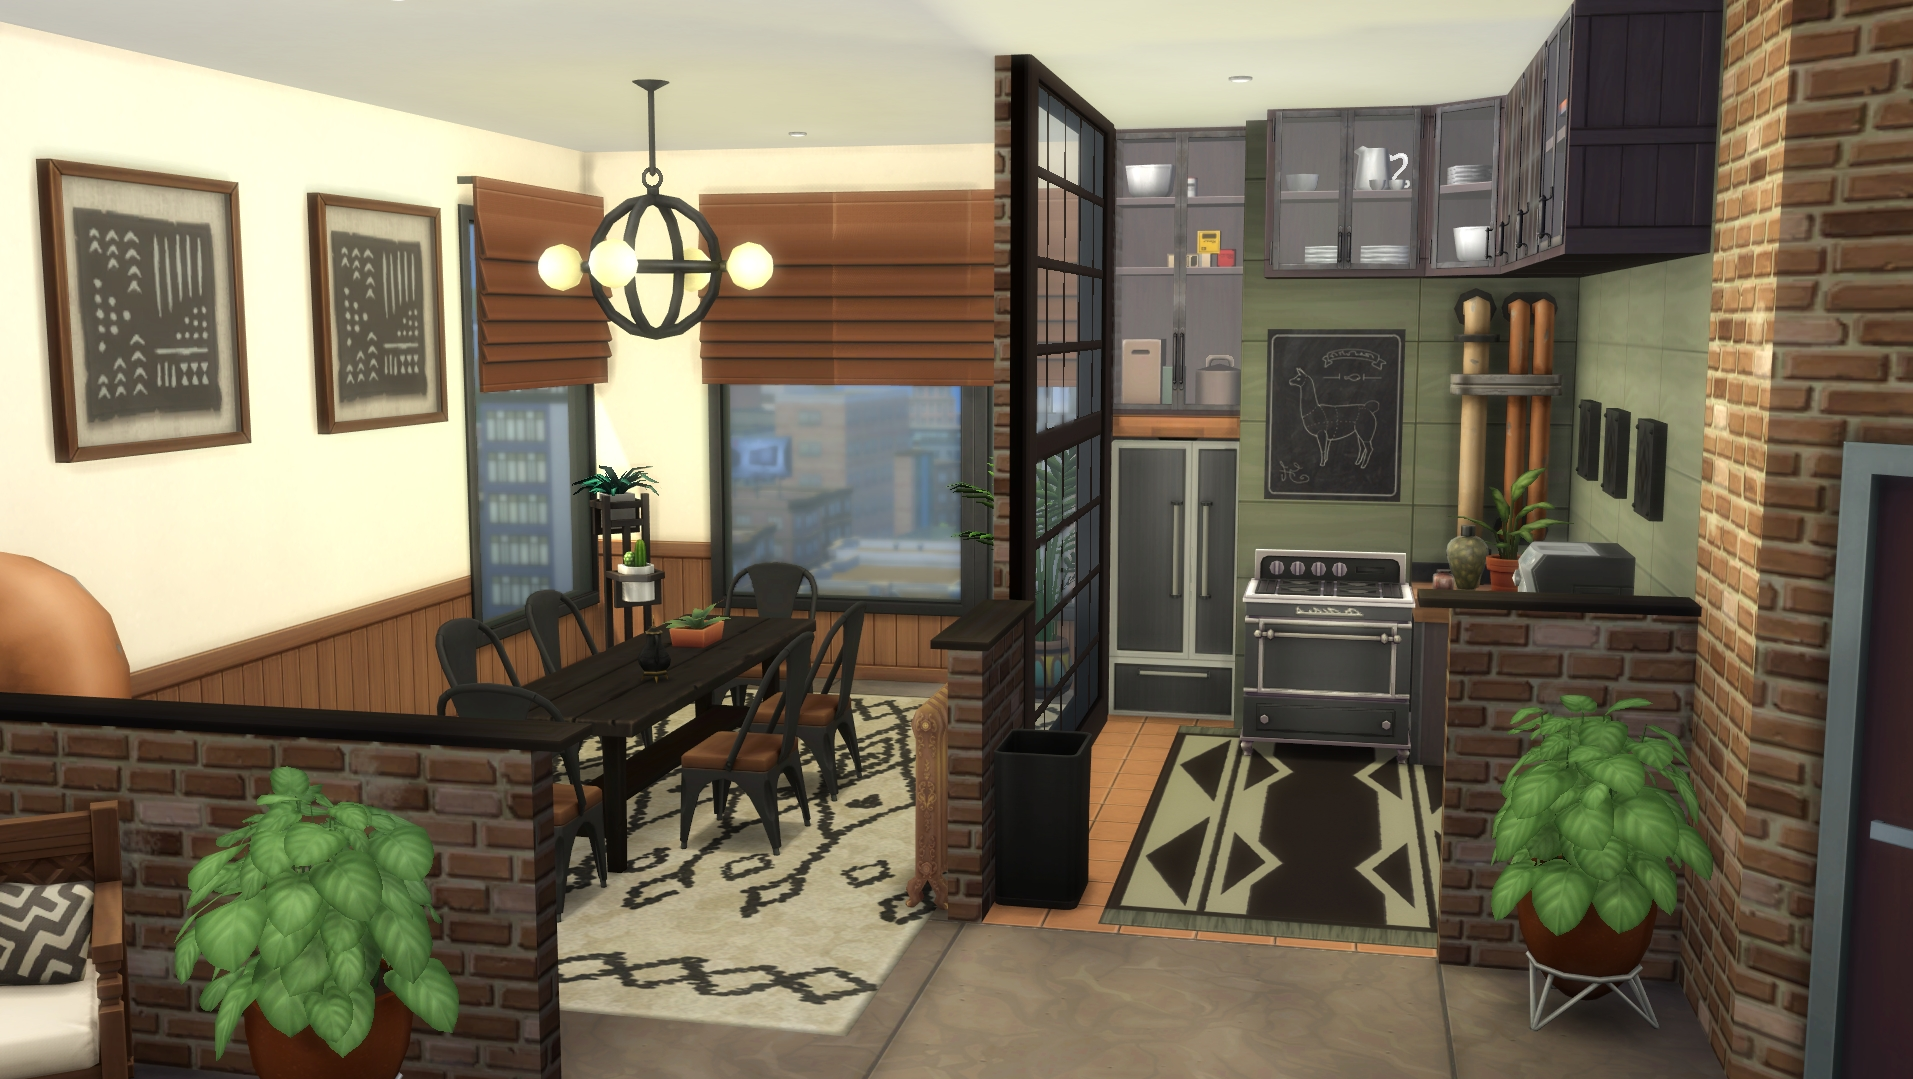 Re Vamped One Of The San Myshuno Apartments And Gave It A 40+ Sims 4 Living Room No Cc Inspirations